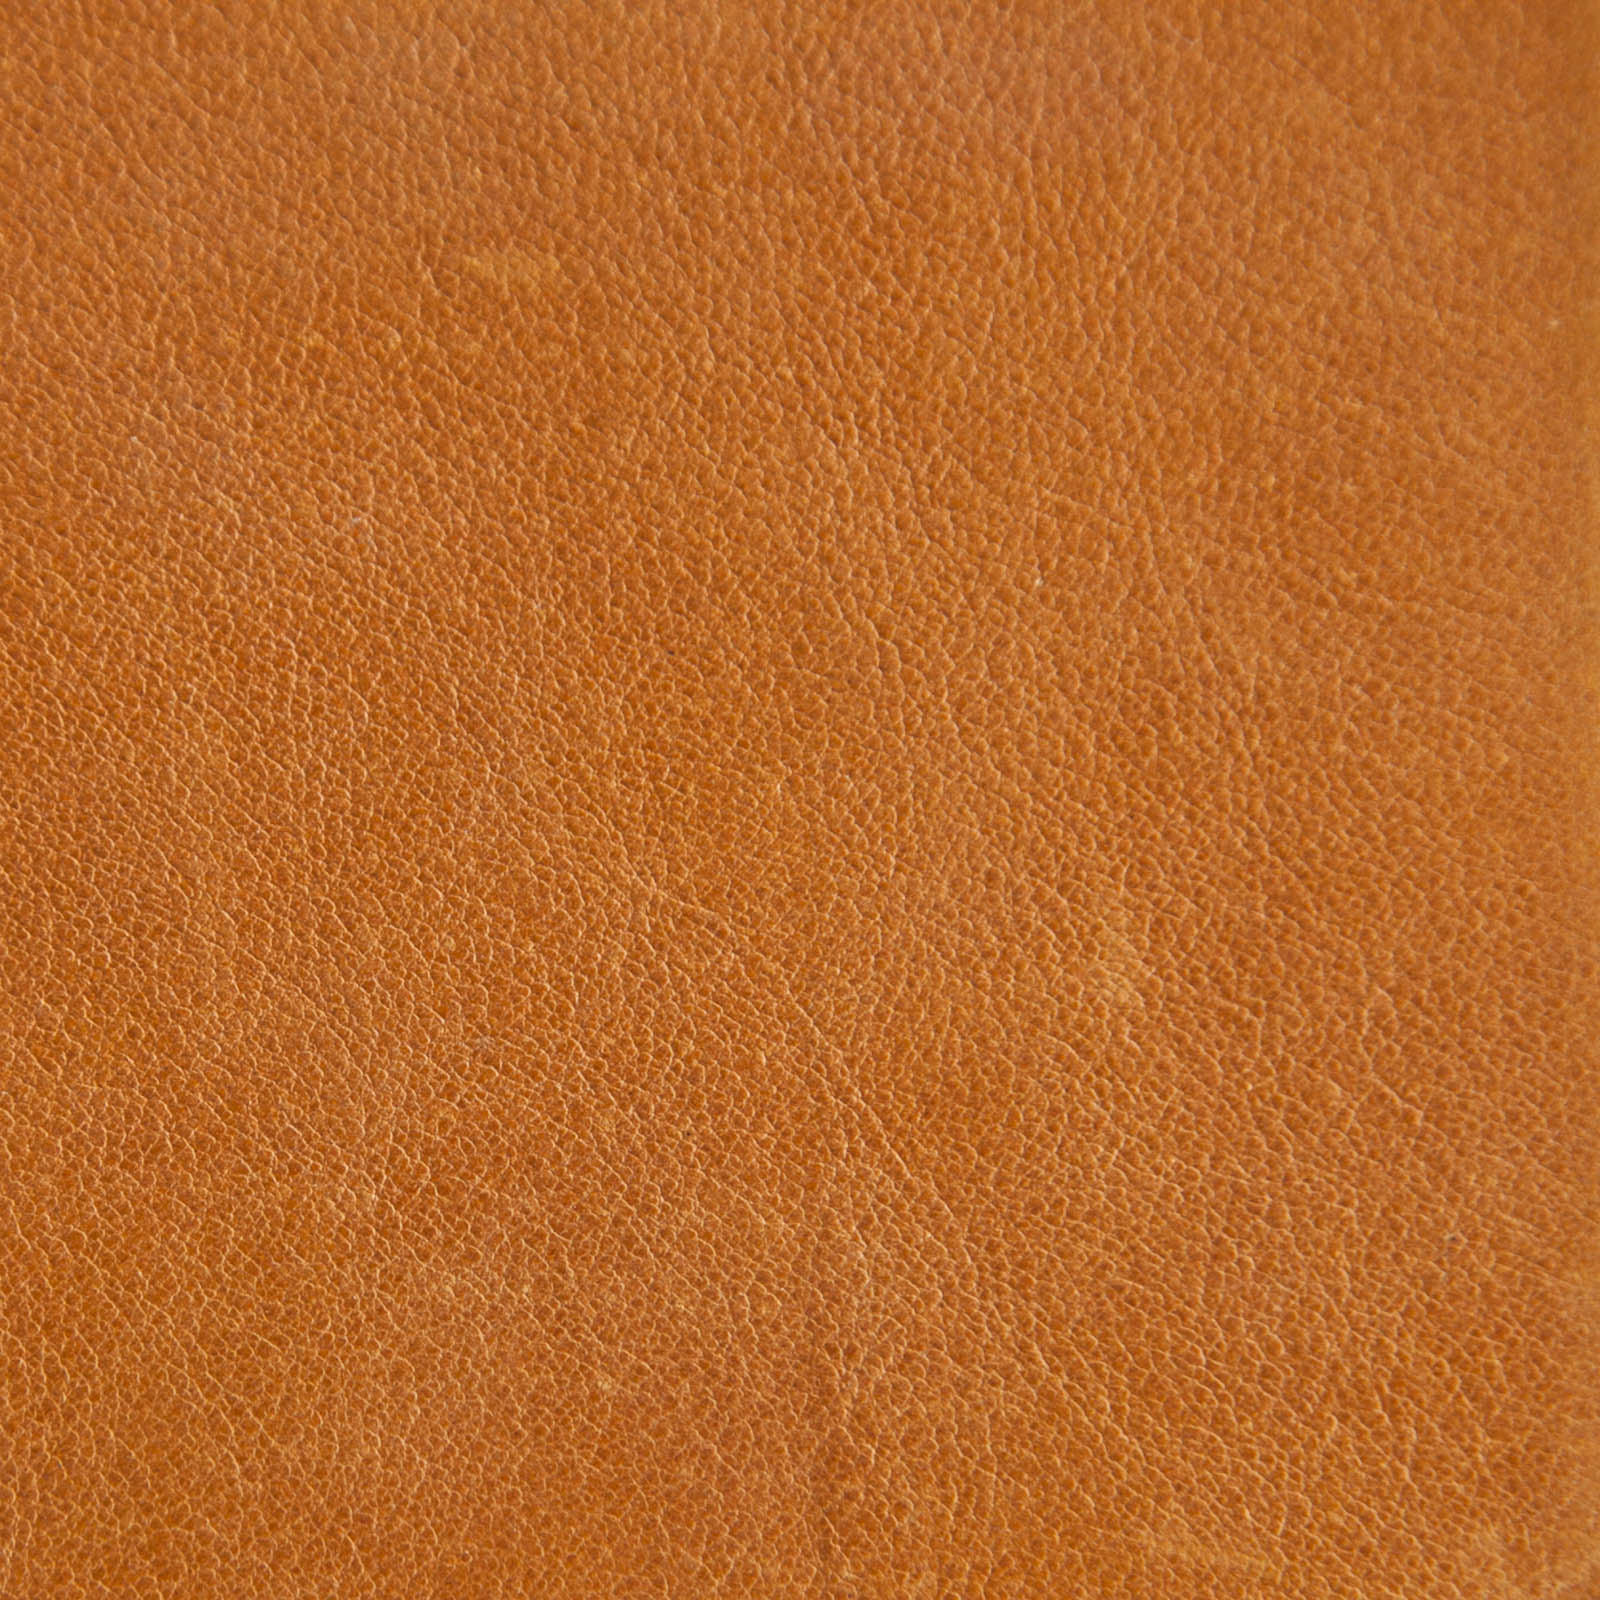 G Leather - Tan